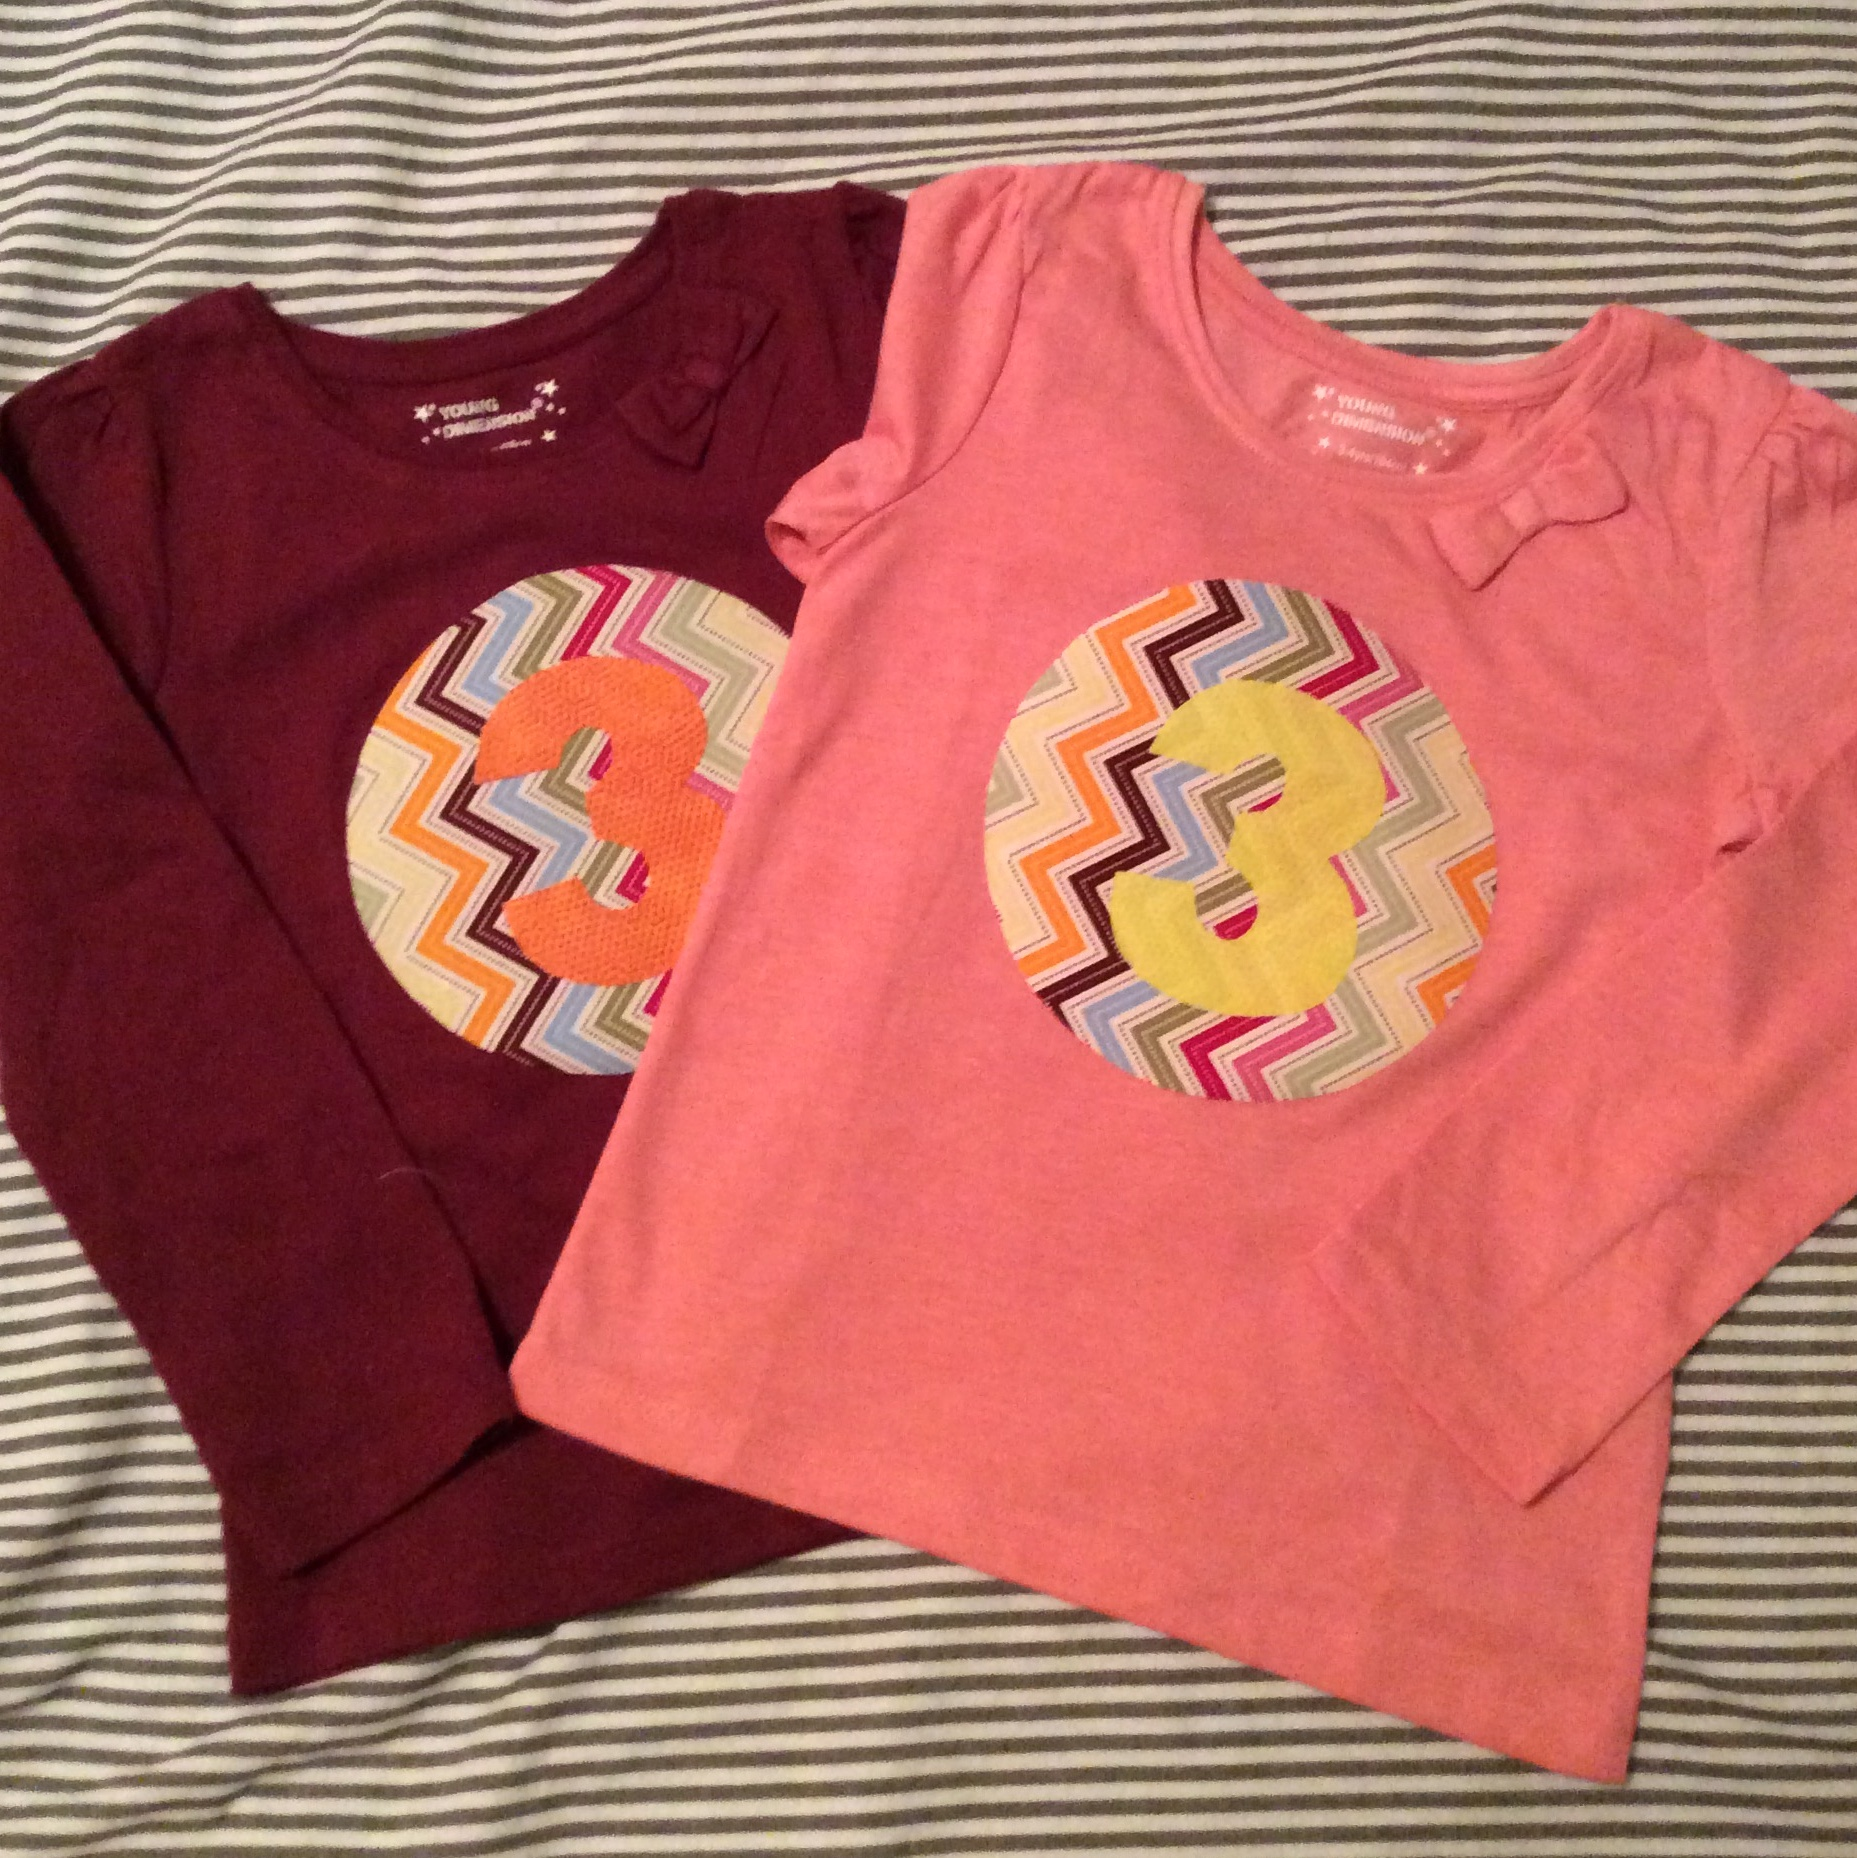 Twins Coordinating Birthday T-Shirts in under an hour